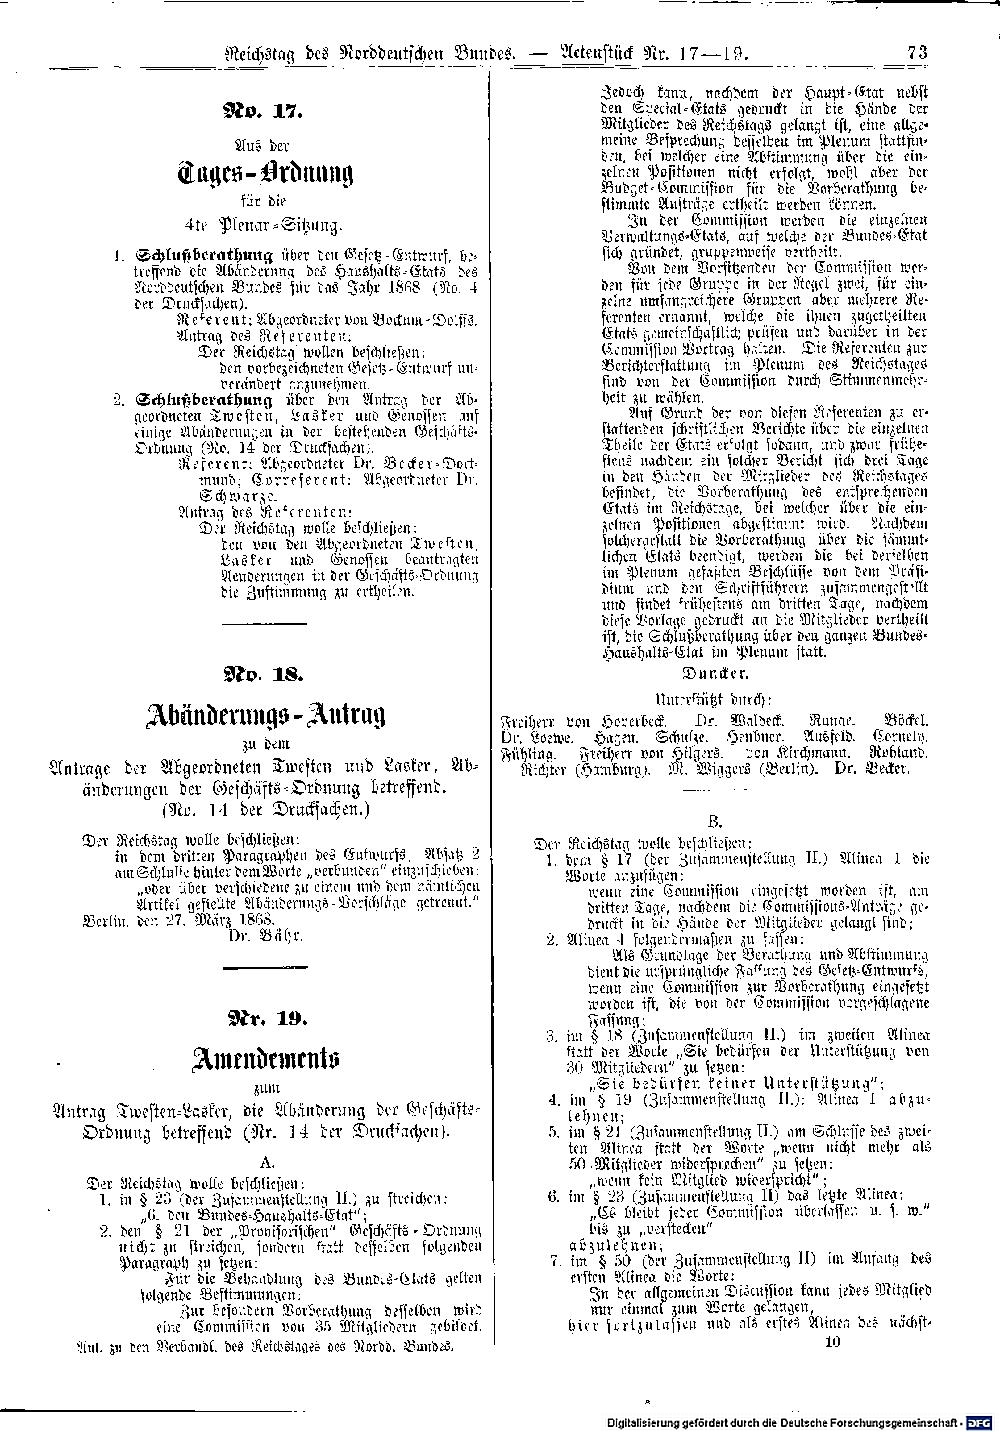 Scan of page 73